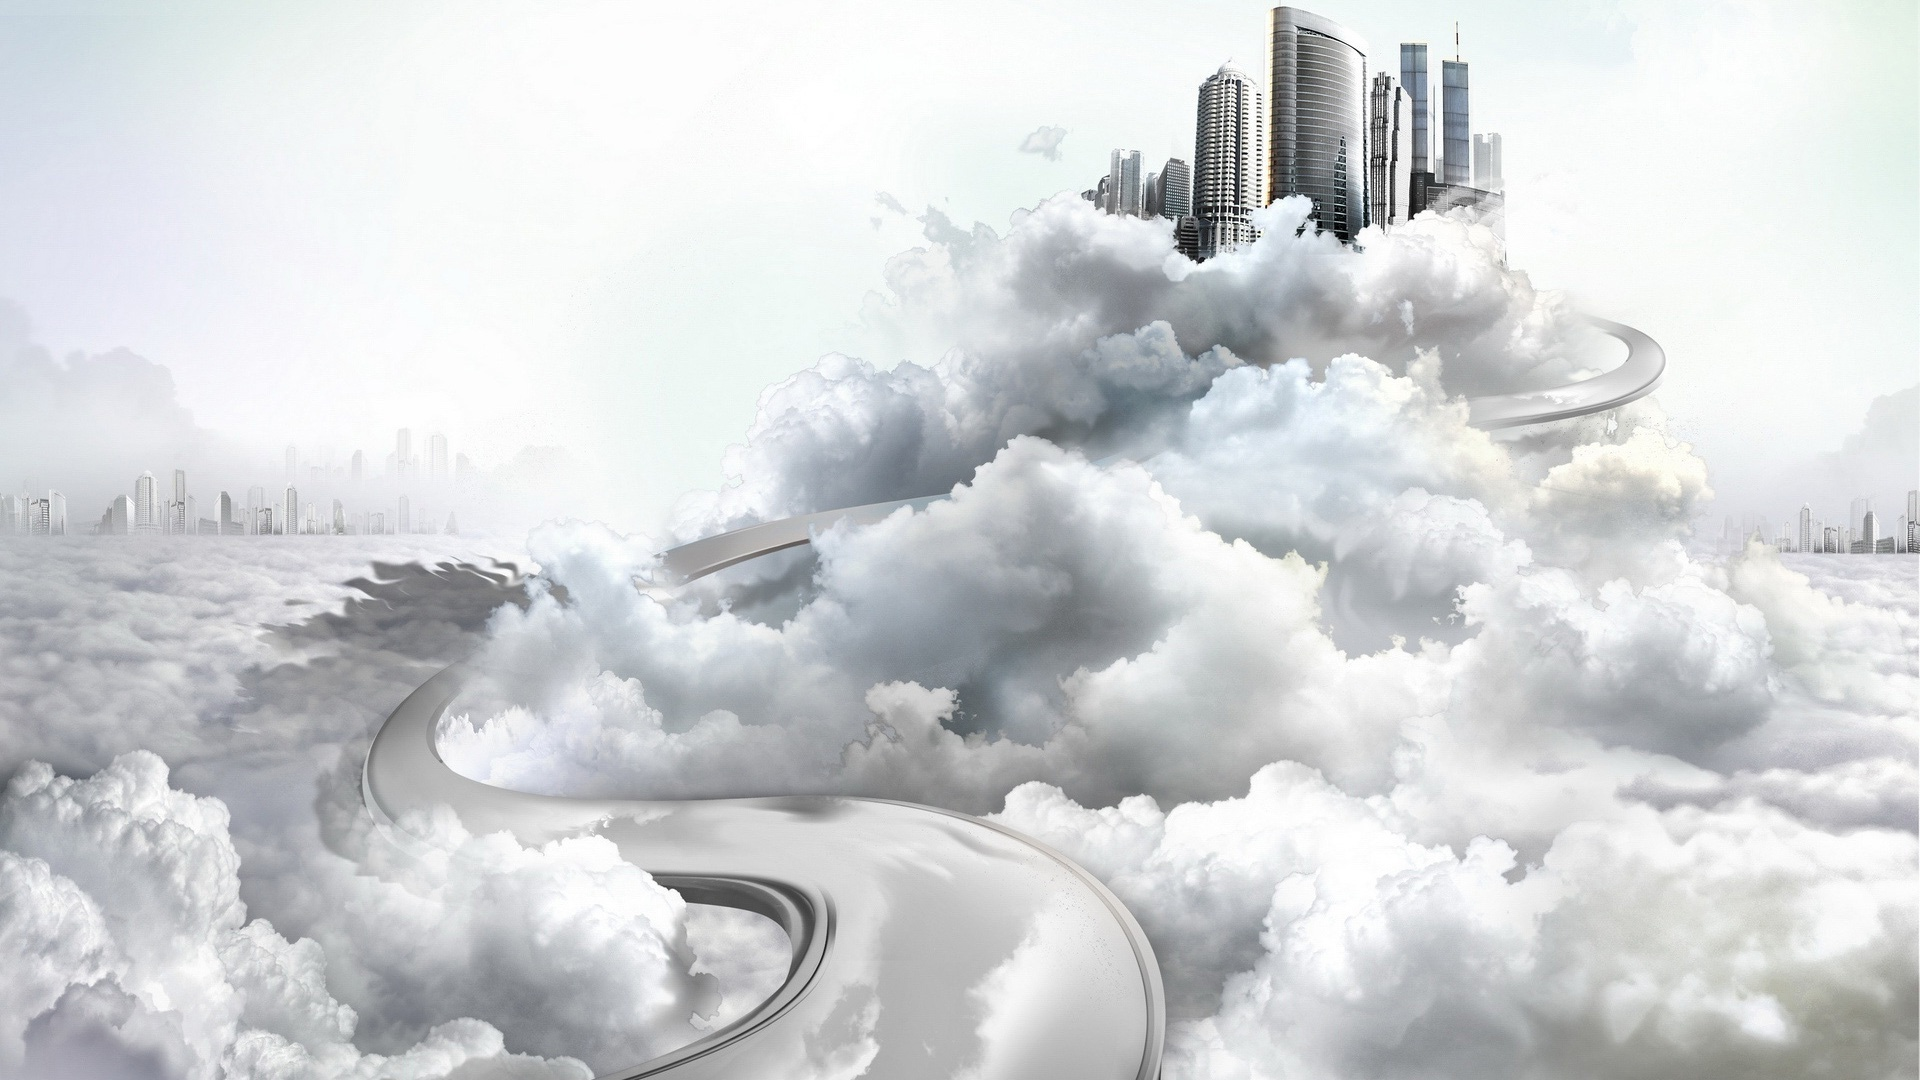 City In Clouds free image